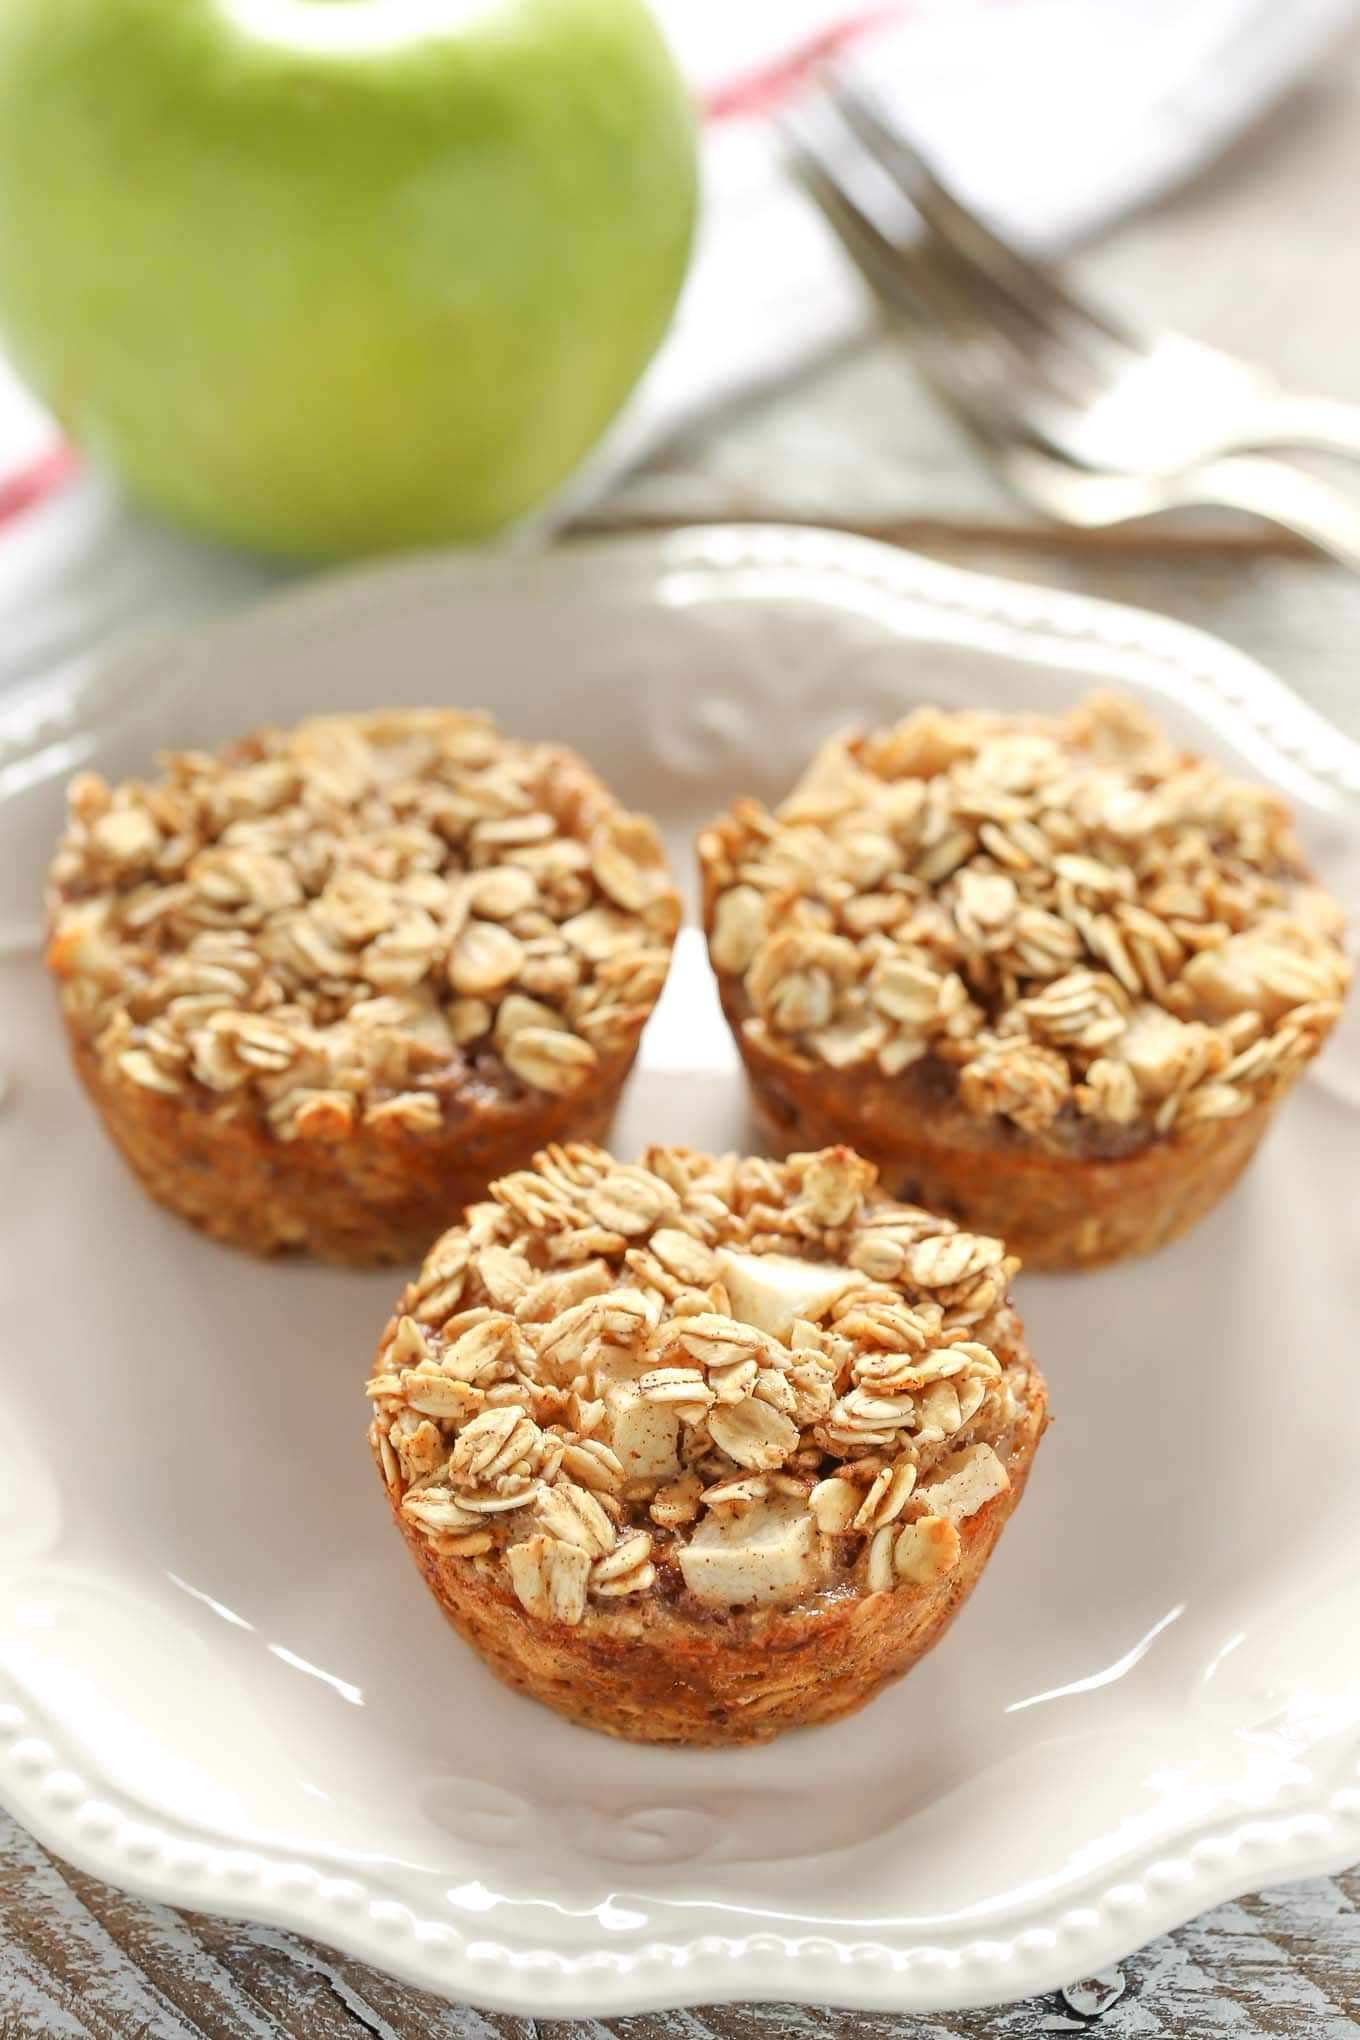 Three baked apple oatmeal cups on a white plate. A Granny Smith apple rests in the background on a tea towel.